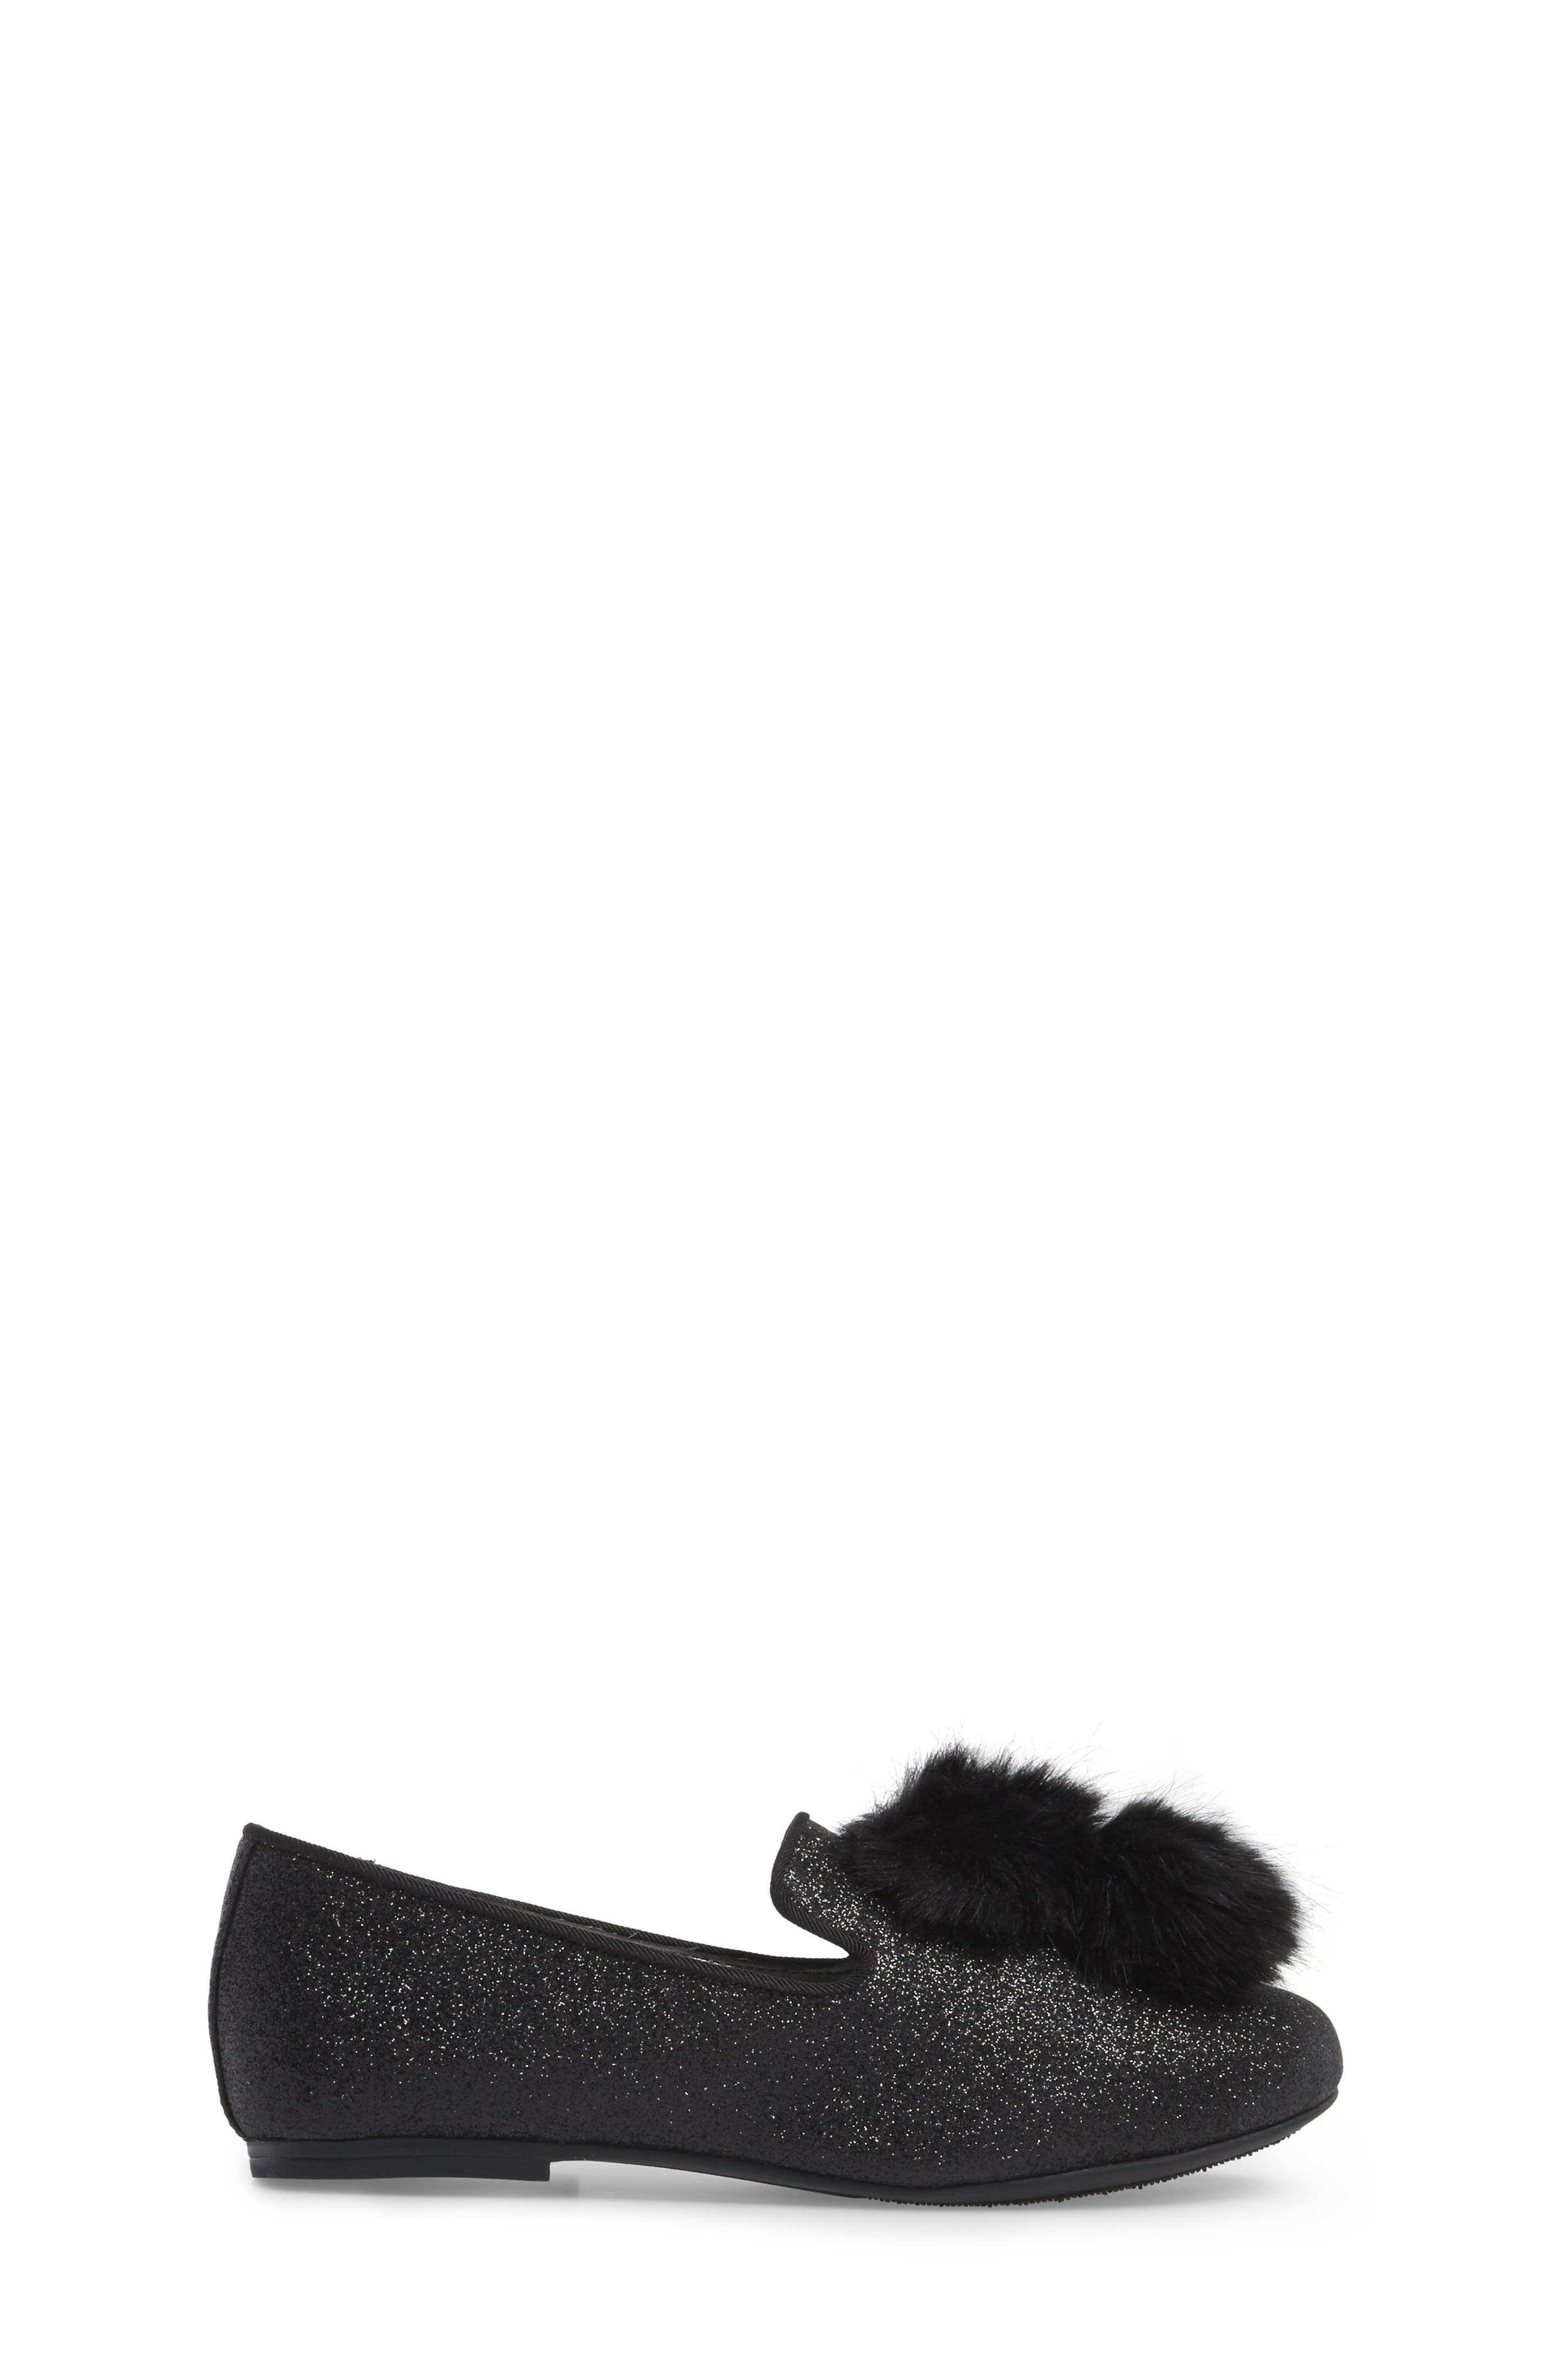 Caela Faux Fur Loafer,                             Alternate thumbnail 3, color,                             Black Glitter